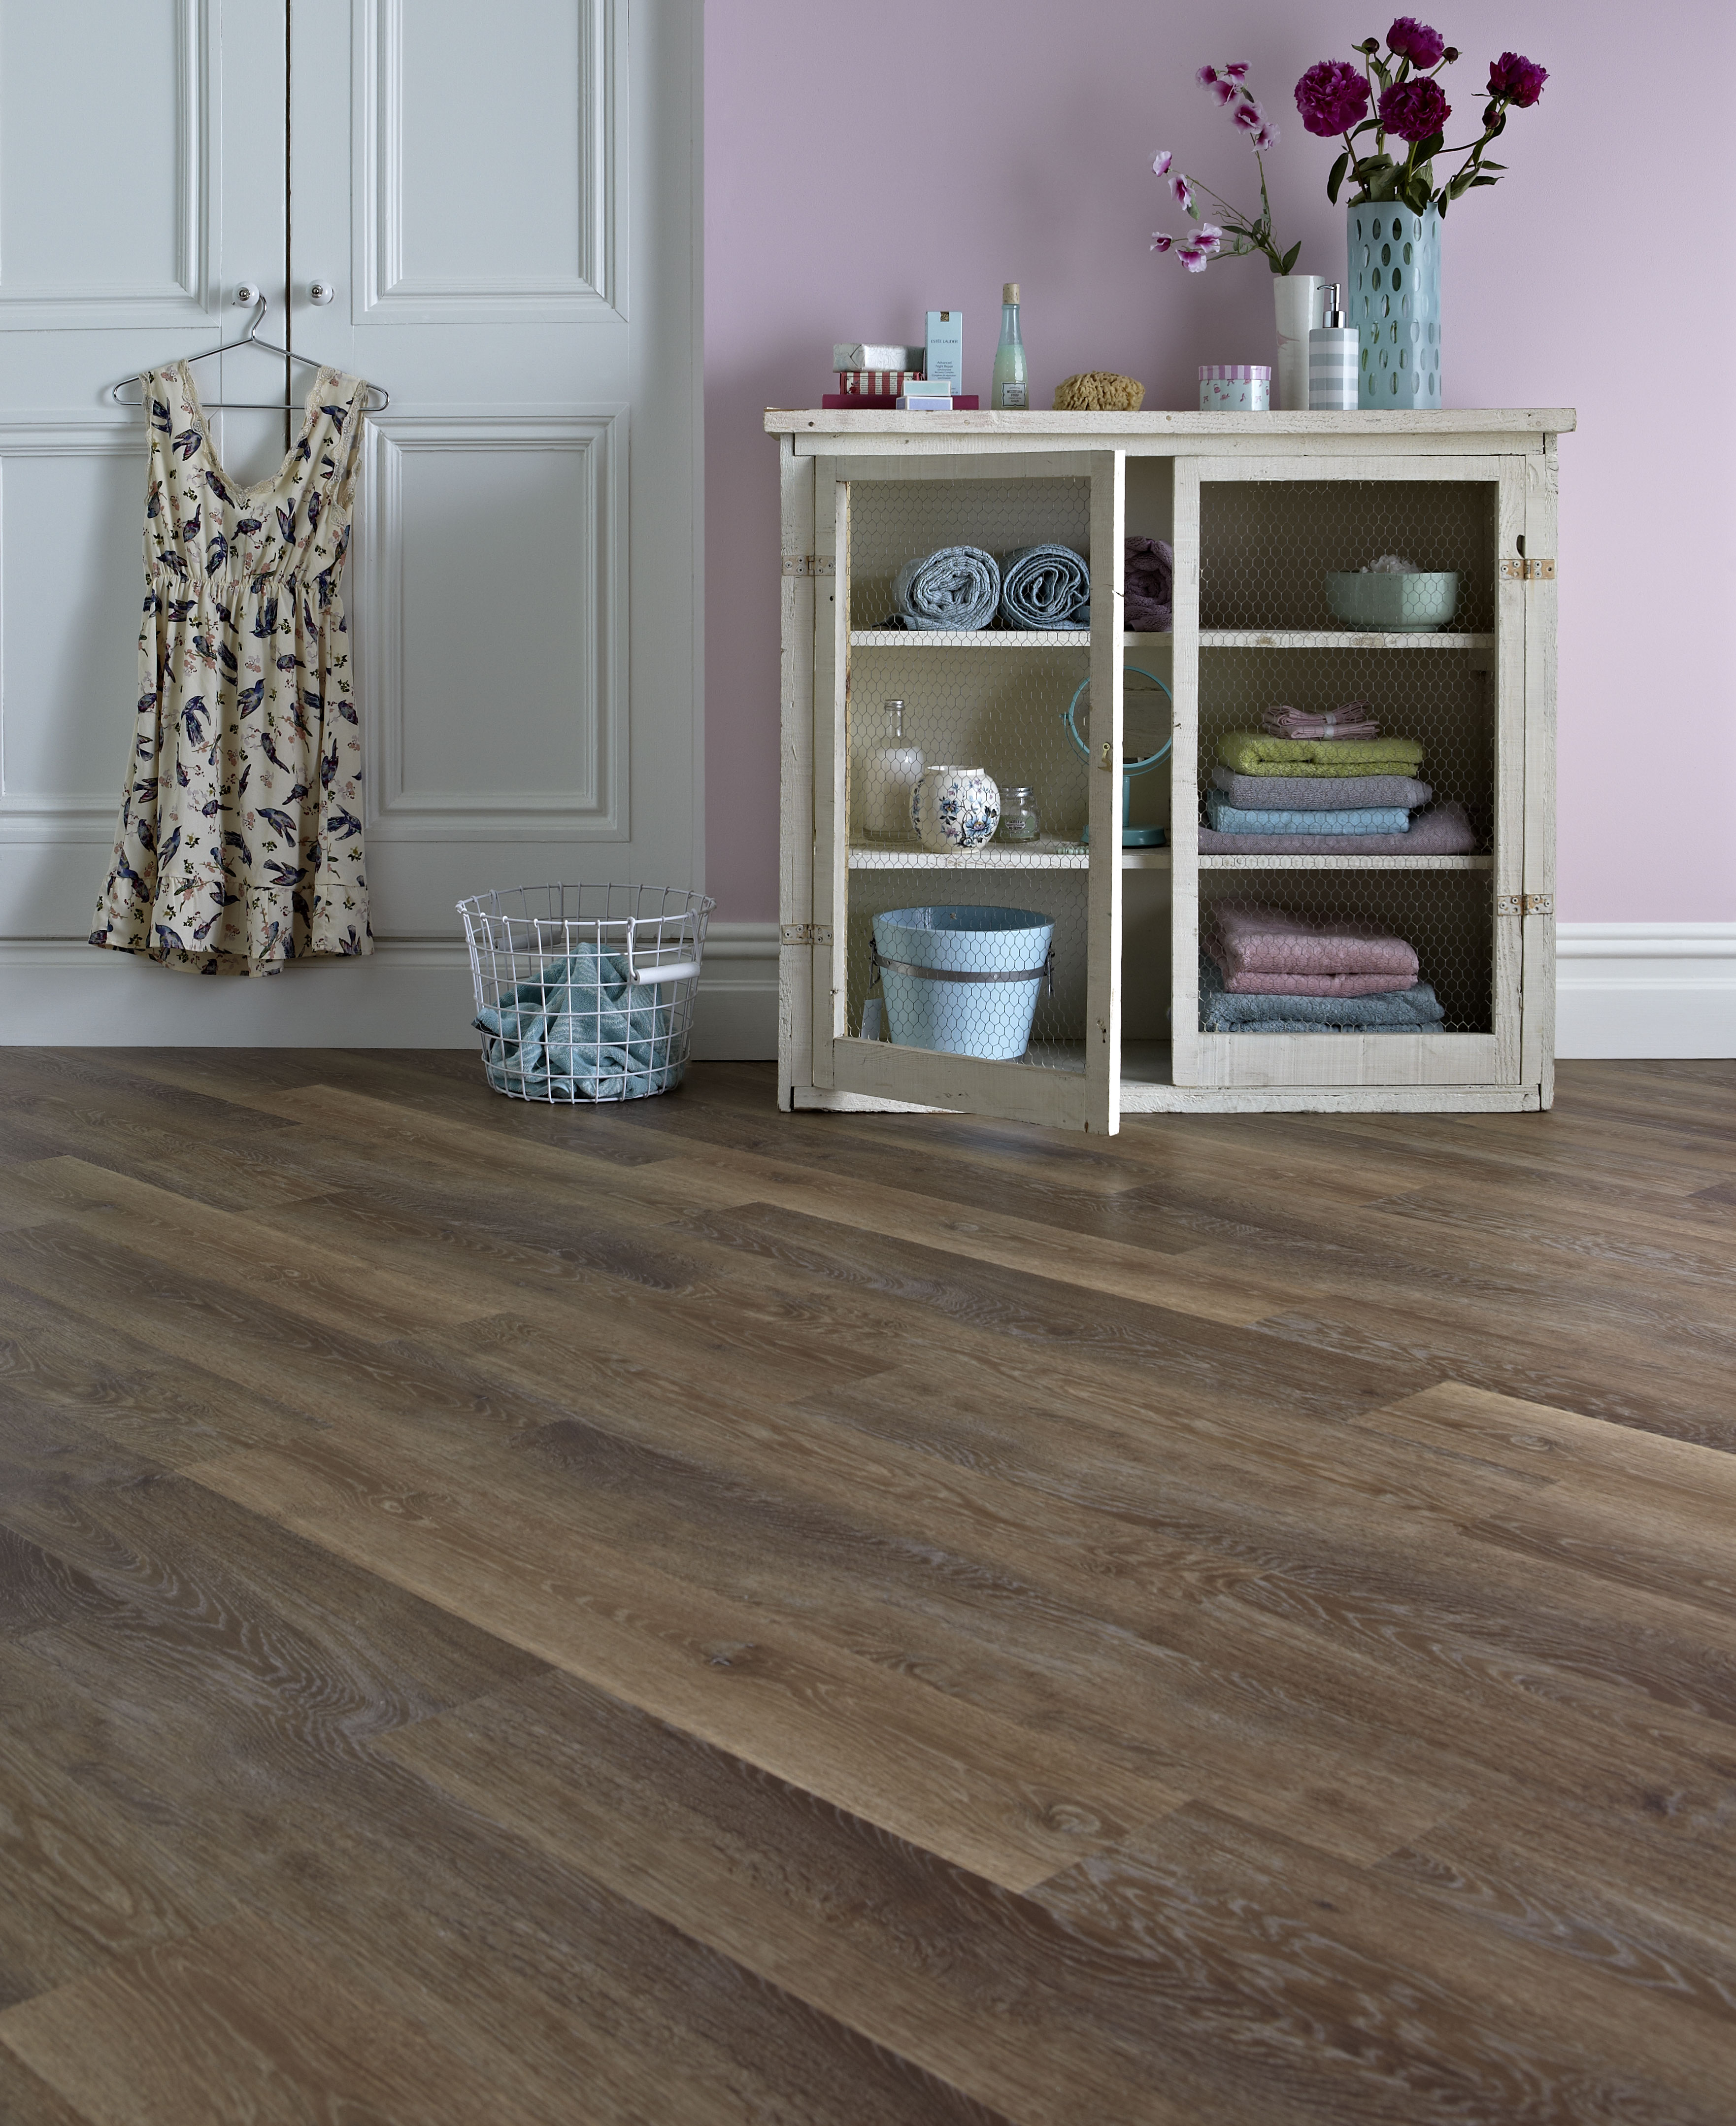 Perfect  Of The Karndean Non Slip Flooring Bathroom In The Gallery Below